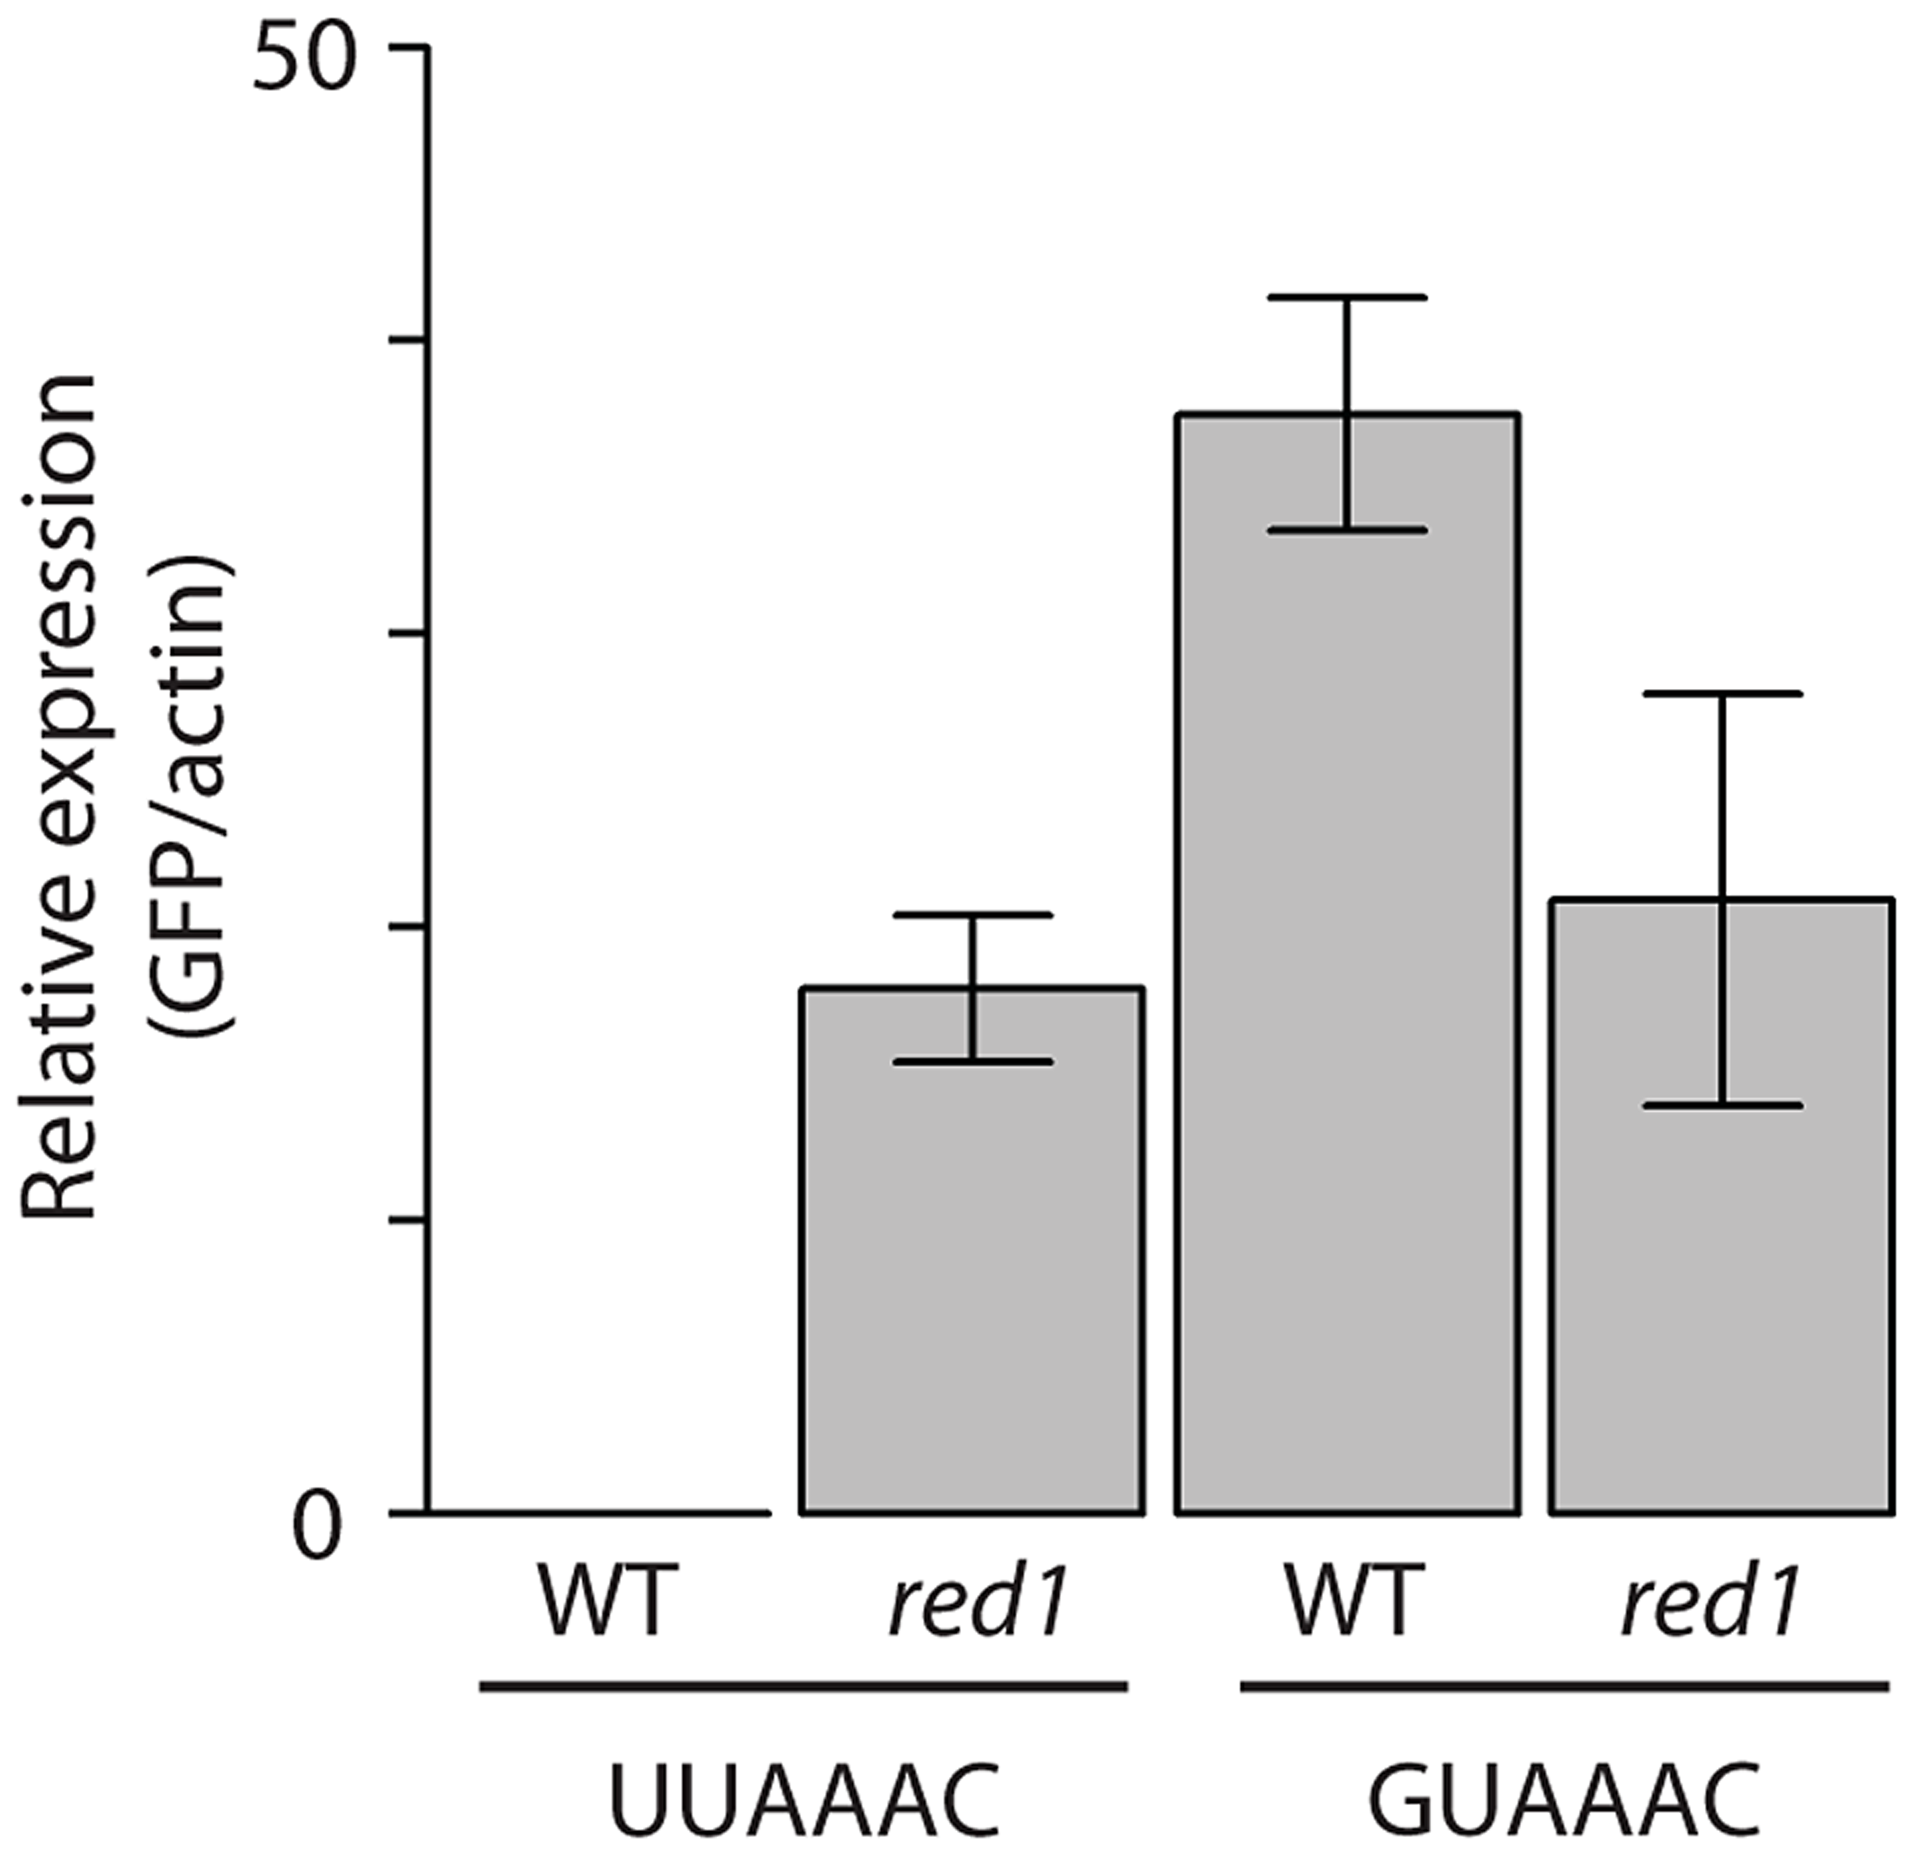 Functional validation of the <i>red1</i>-associated motif.